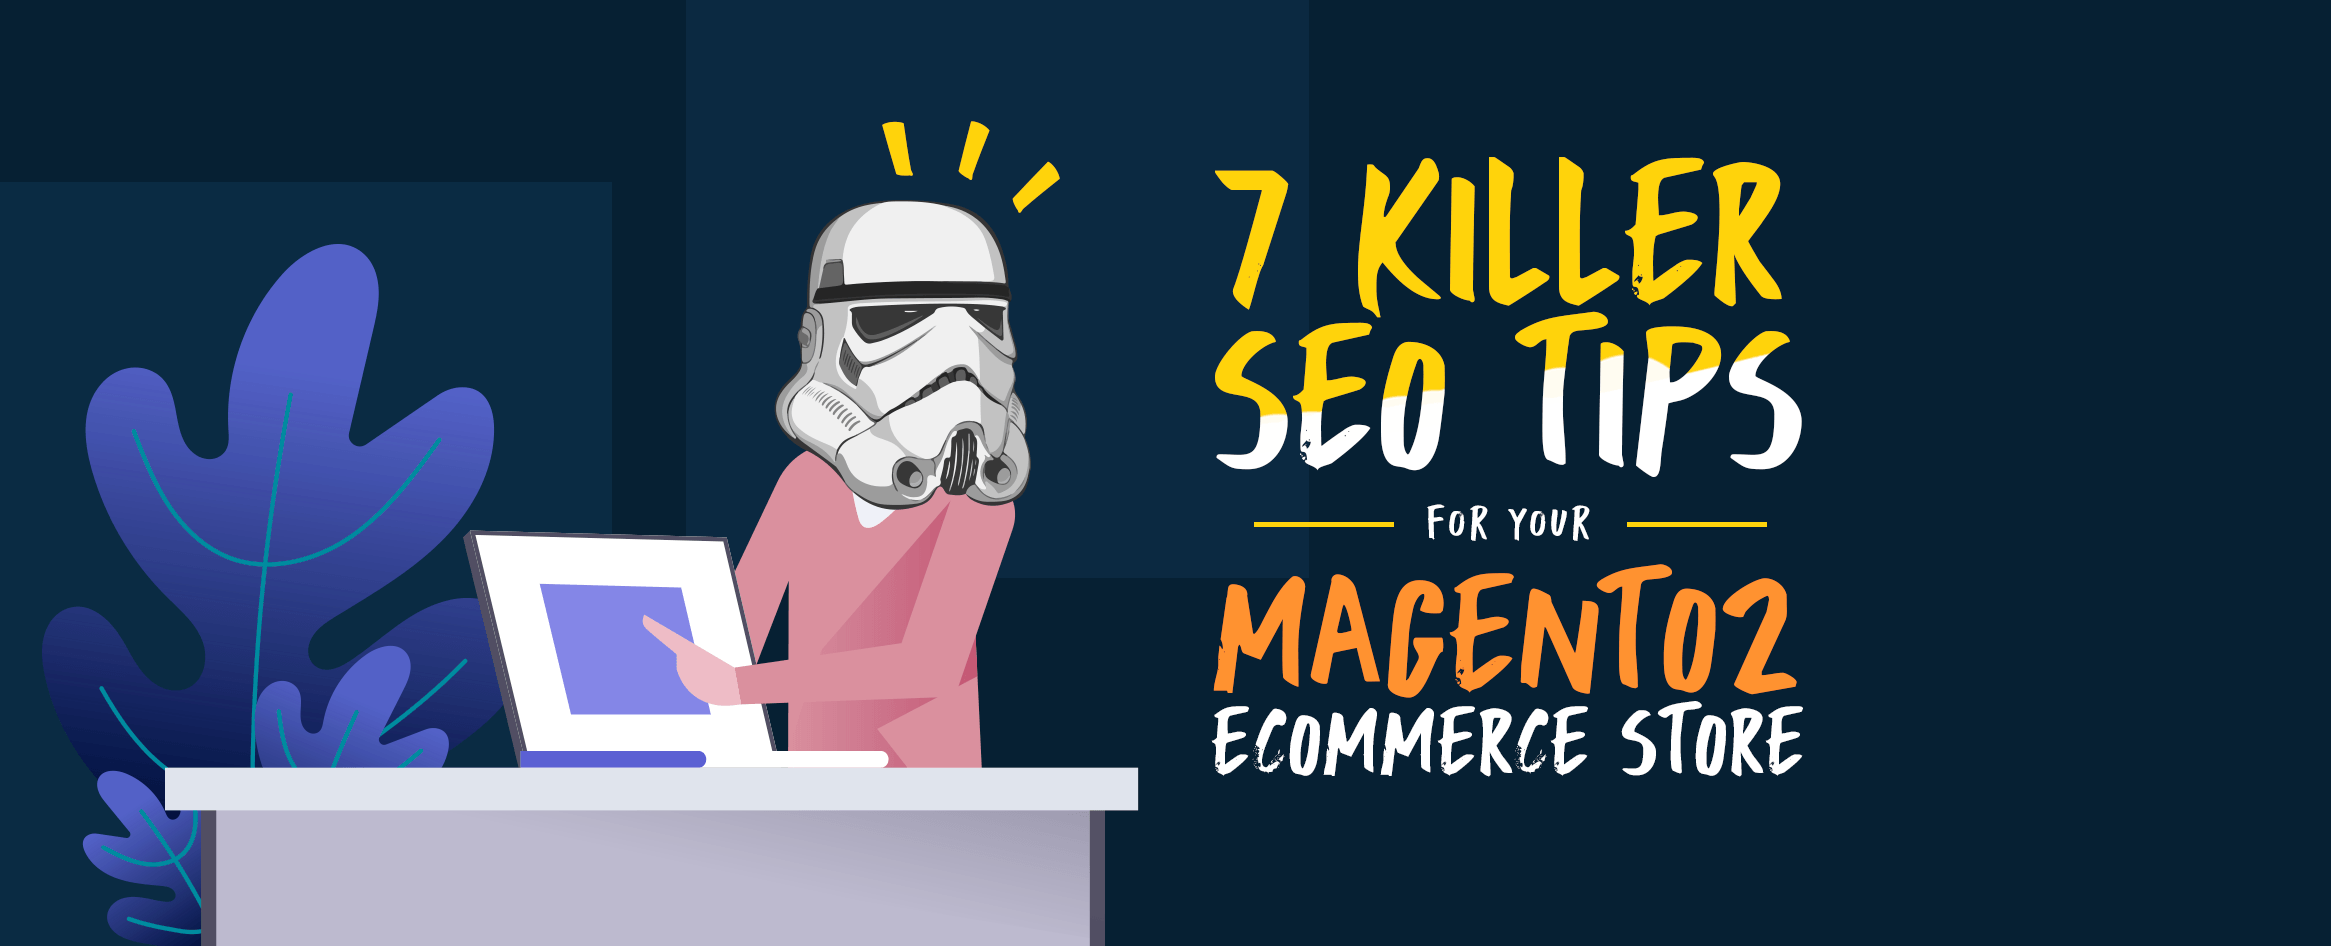 7-Killer-SEO-Tips-for-your-Magento2-eCommerce-Store